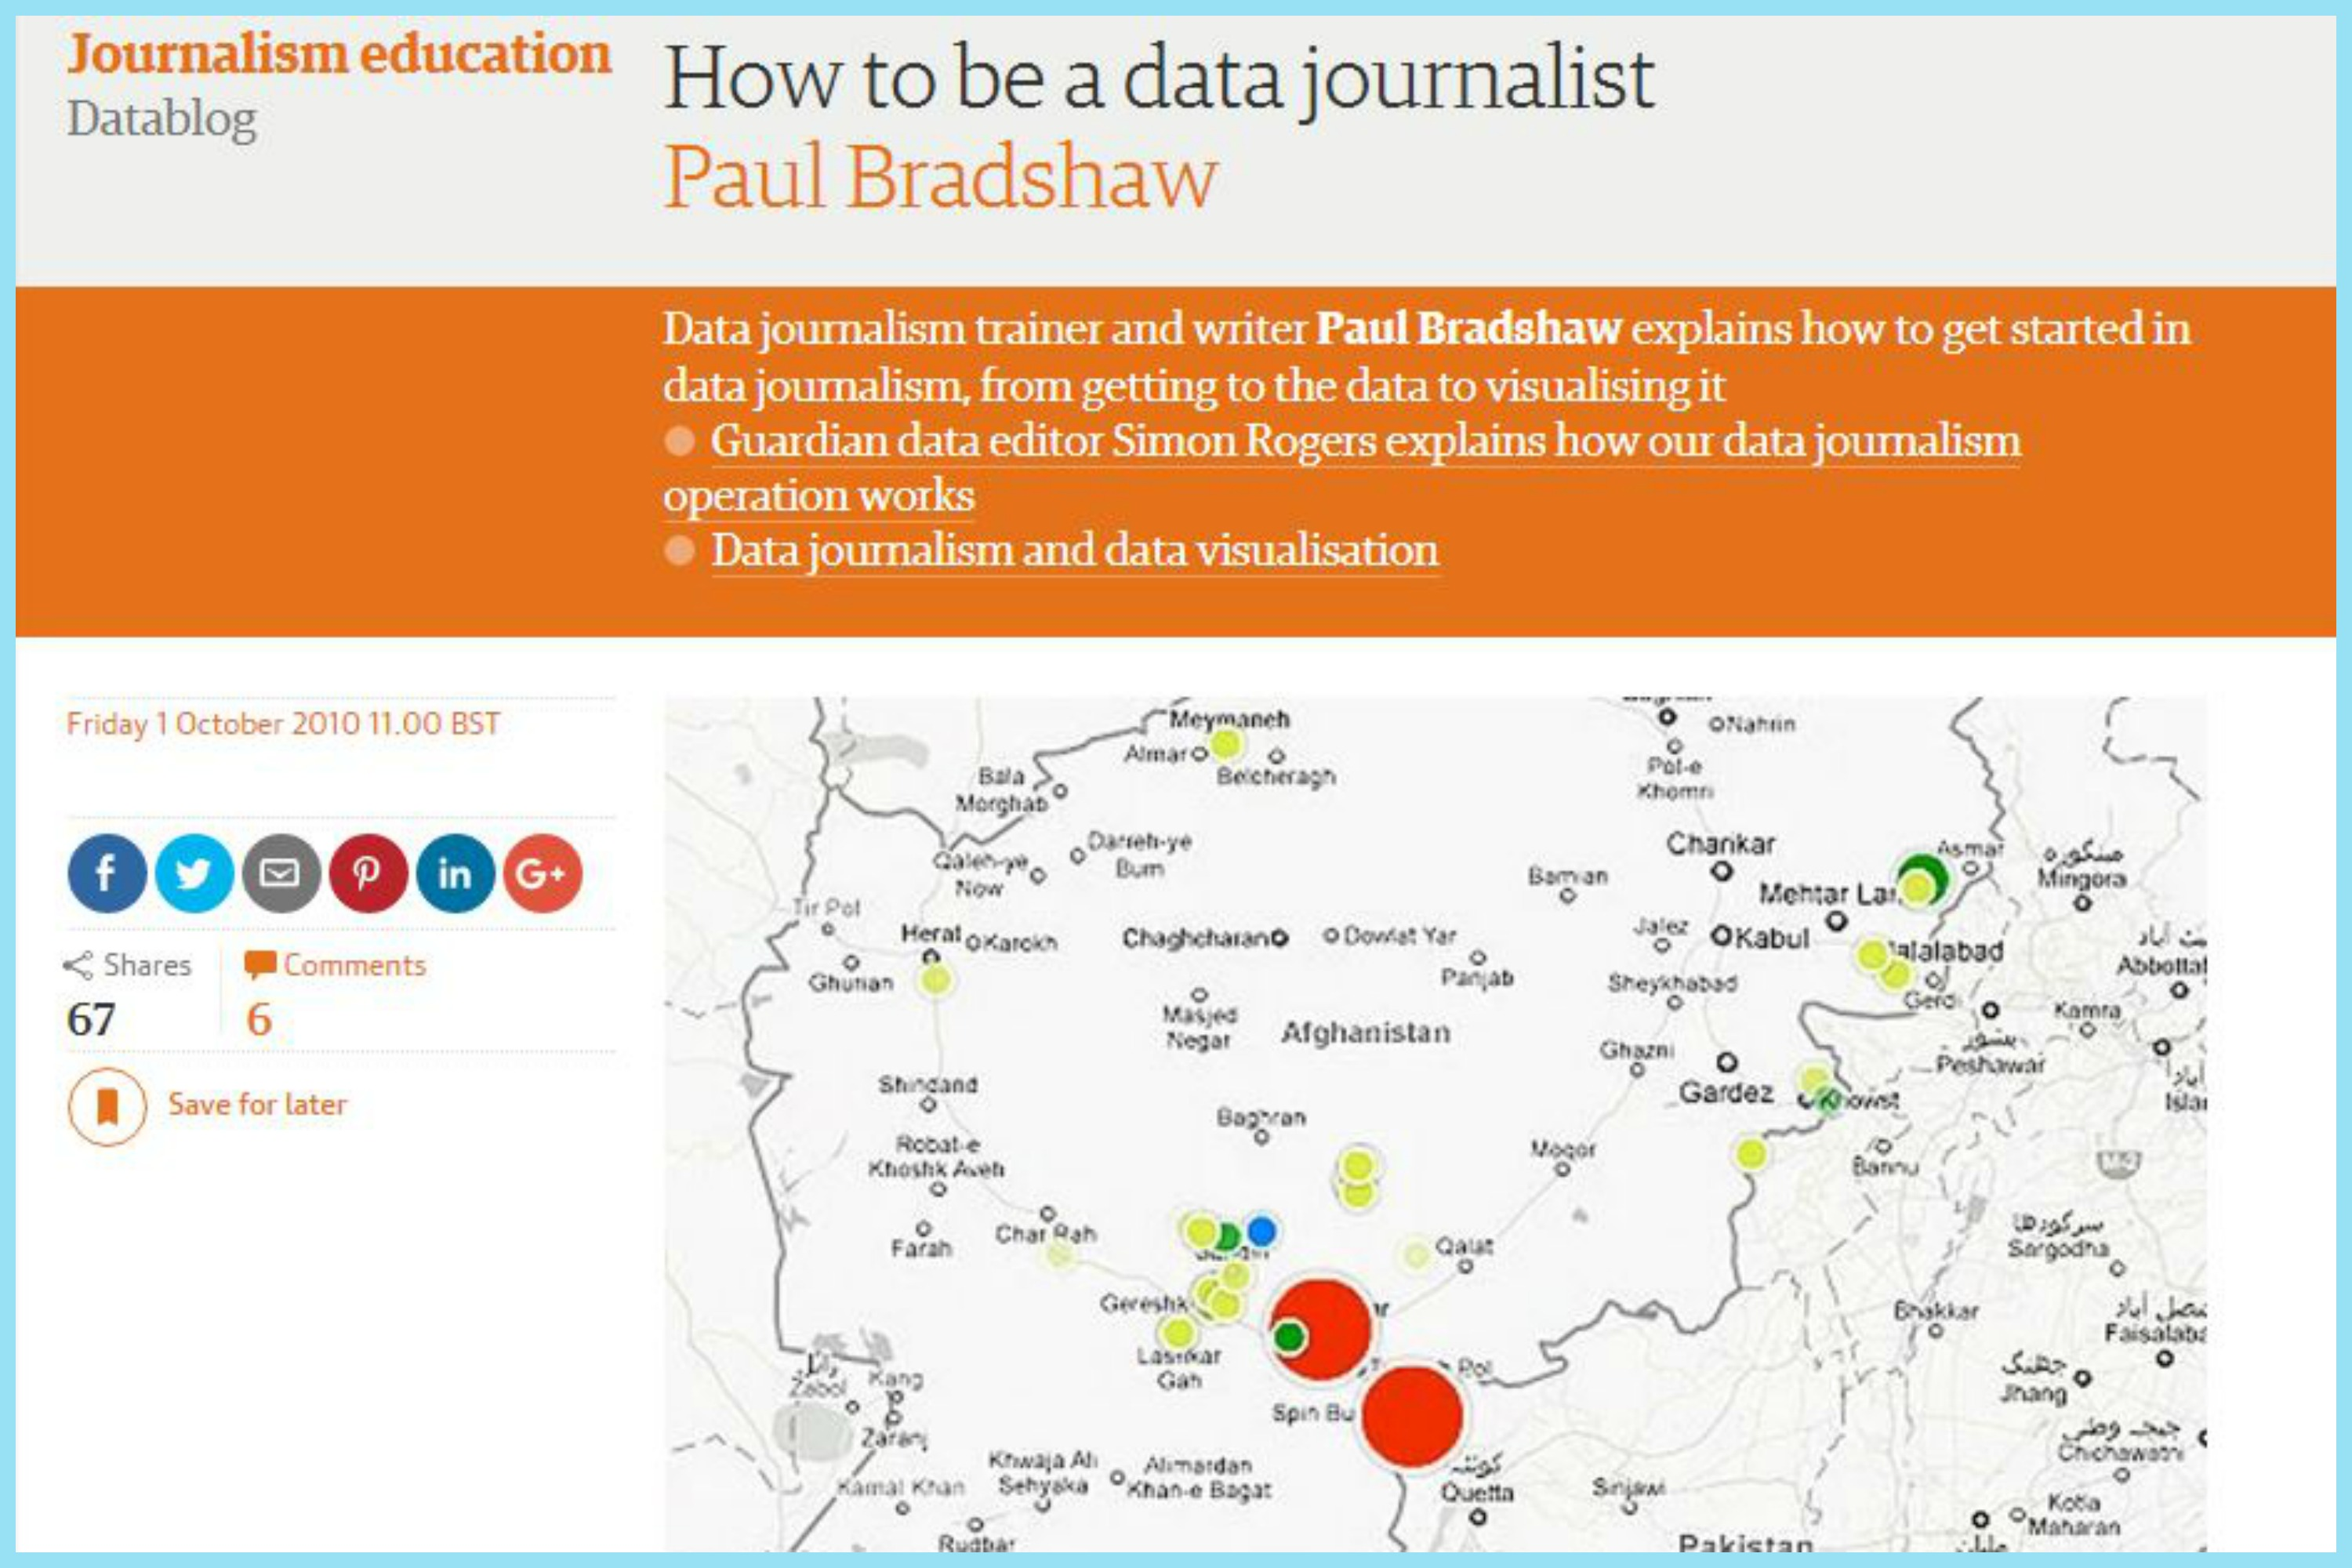 paul bredshaw on guardian data blog